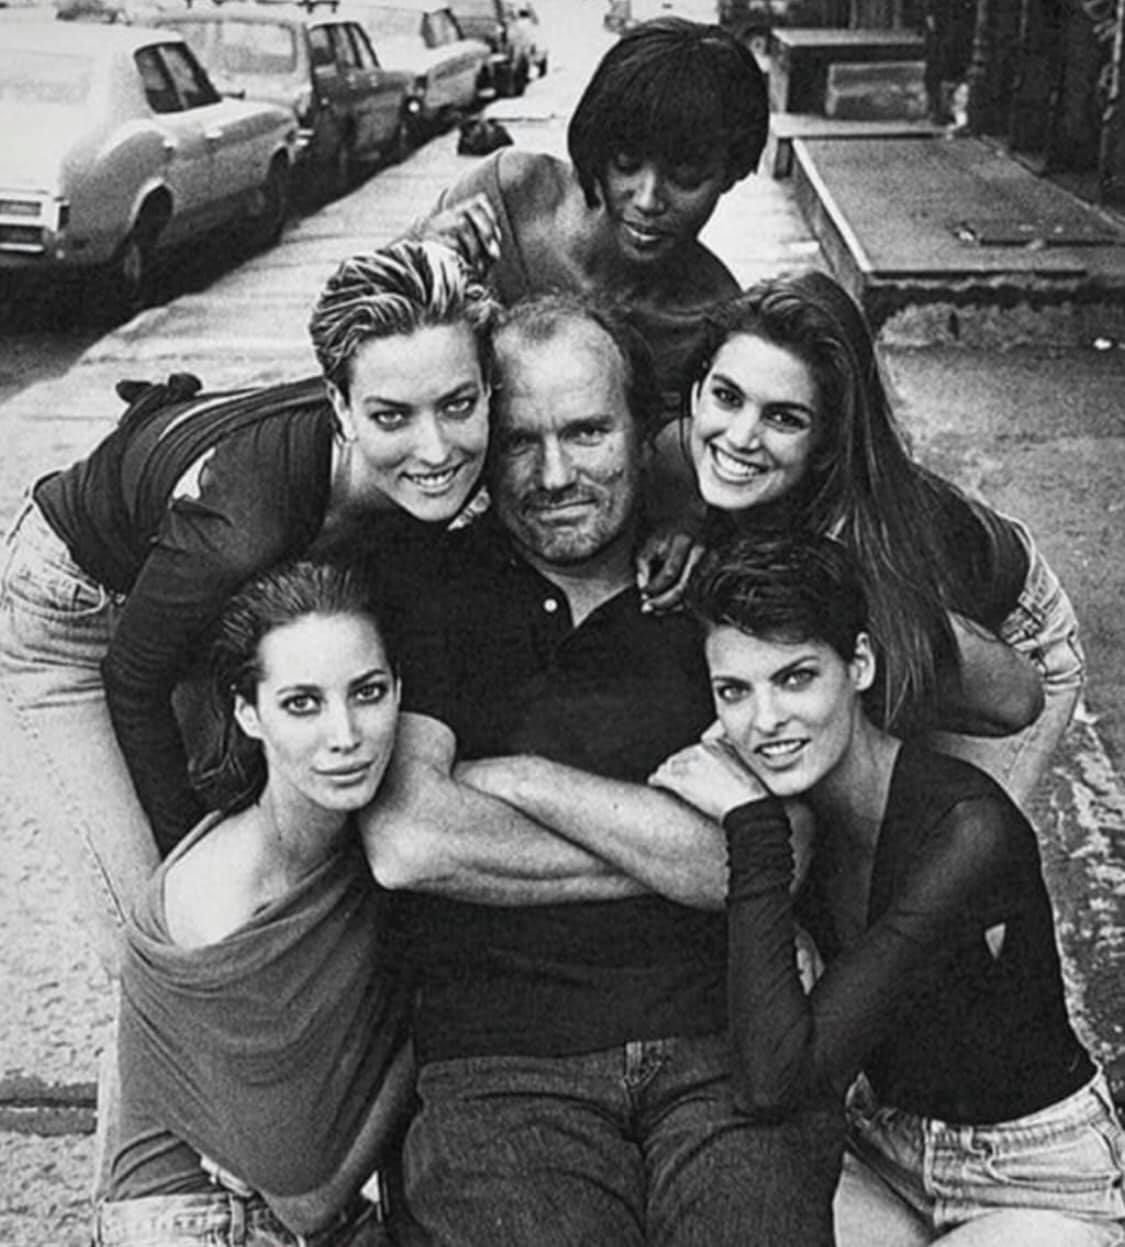 Peter Lindbergh and supermodels